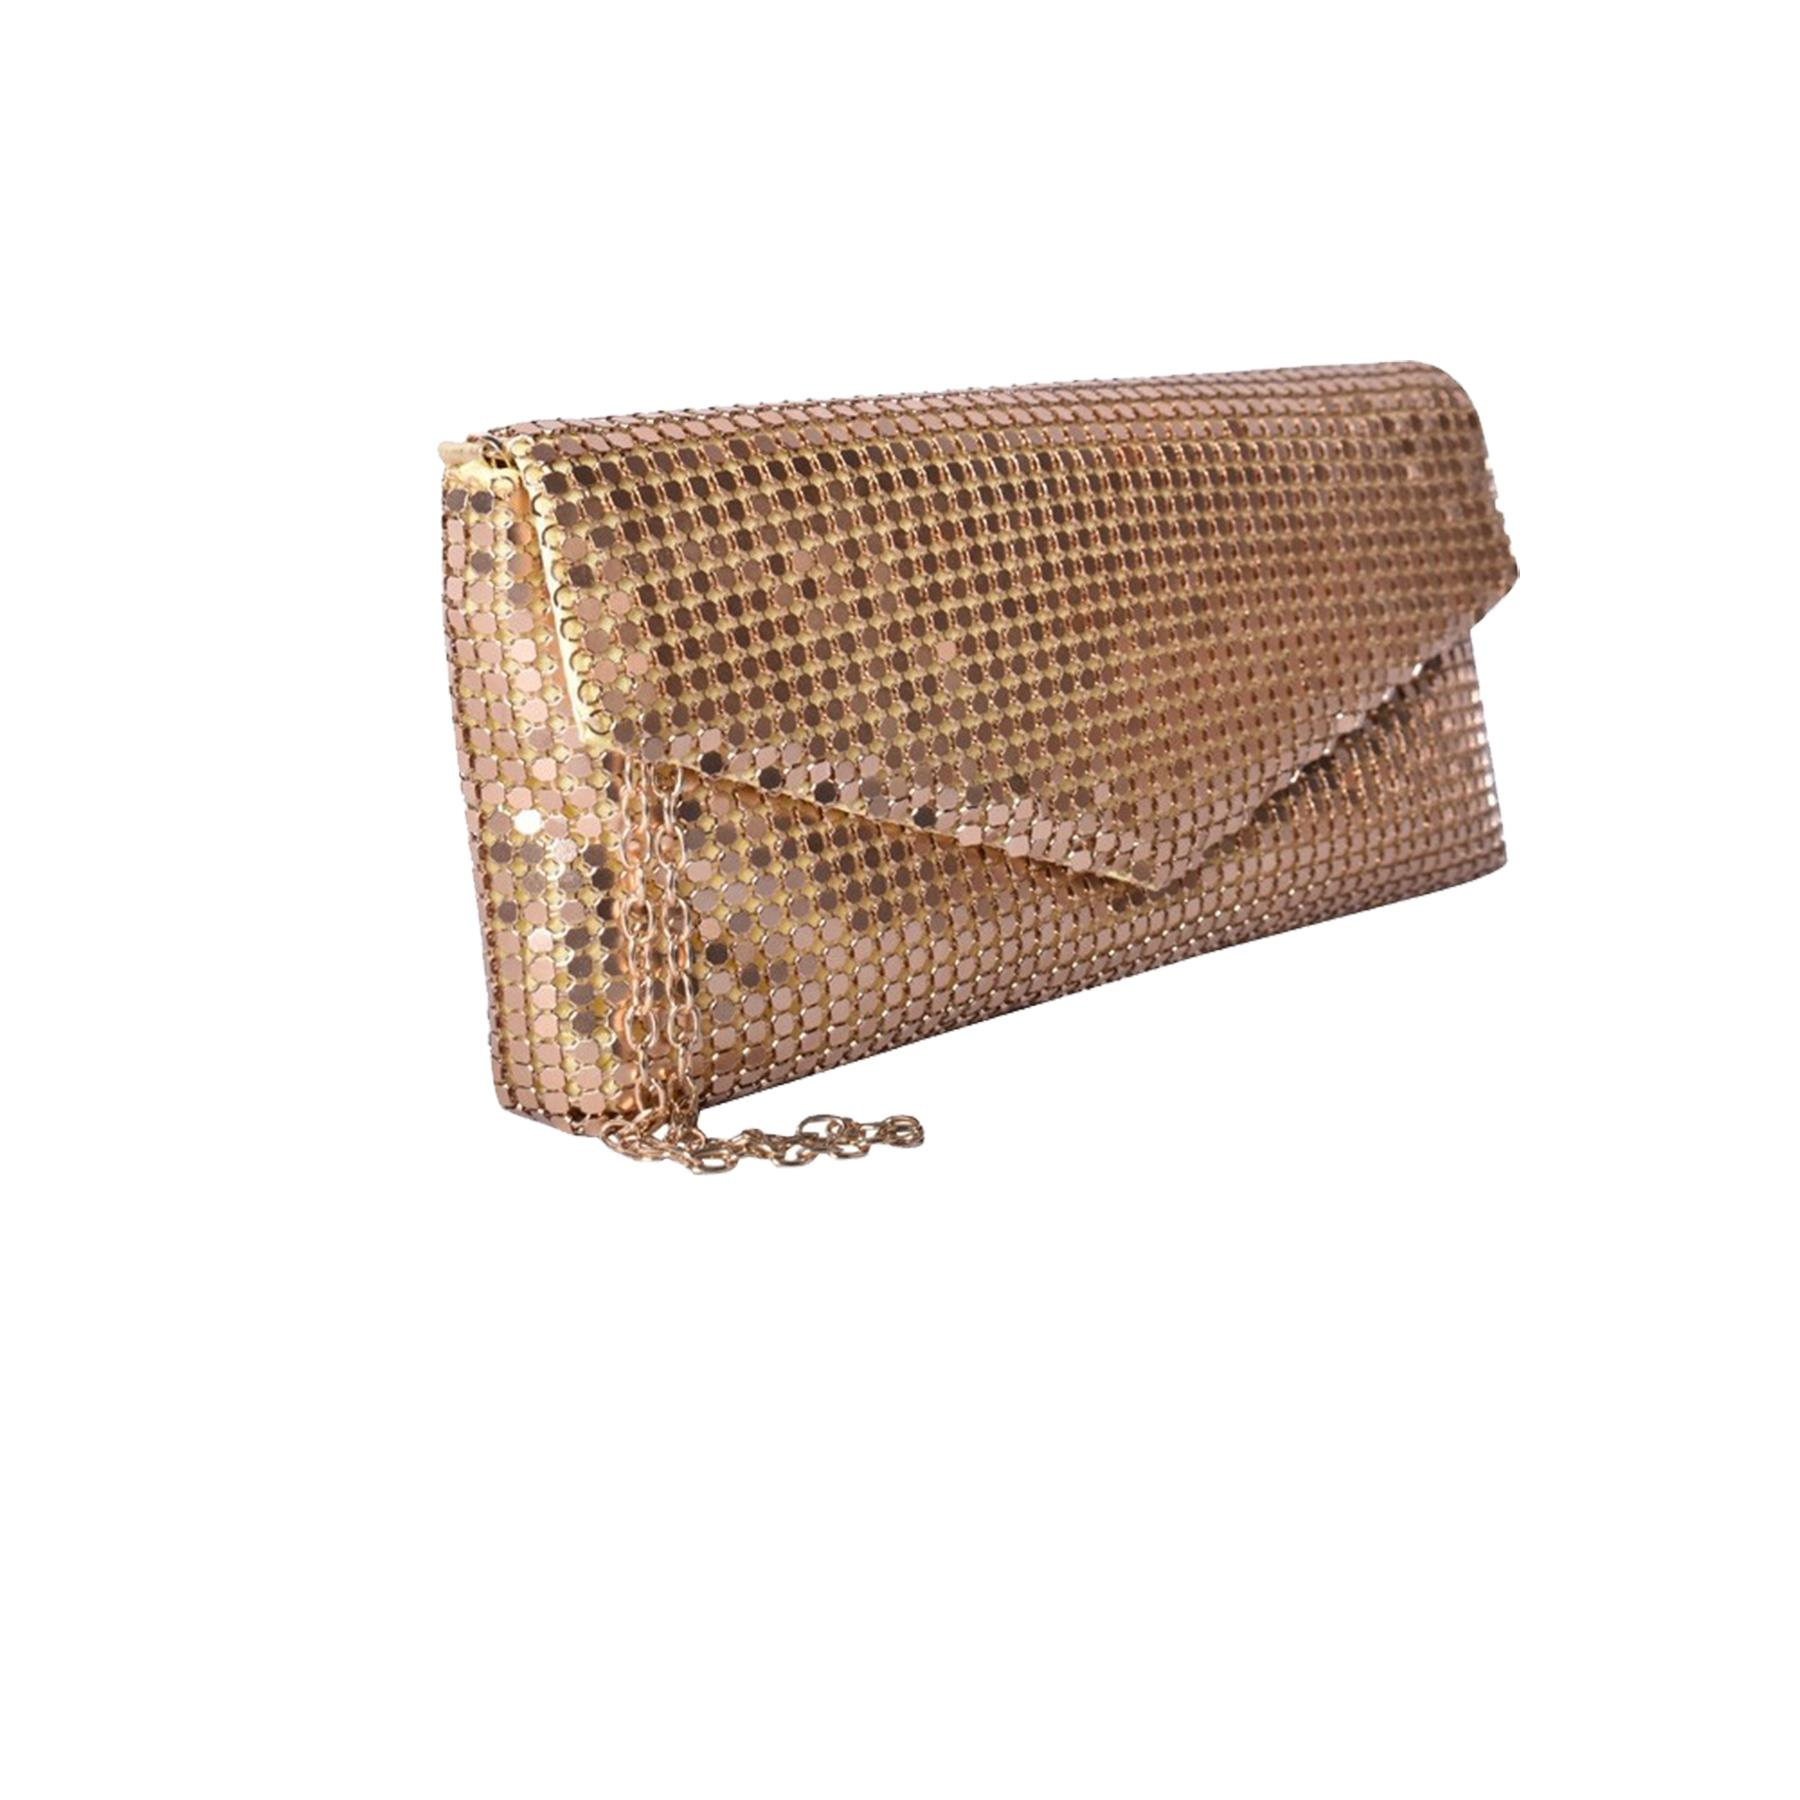 New-Ladies-Chainmail-Faux-Leather-Chain-Strap-Wedding-Clutch-Bag-Pouch thumbnail 21